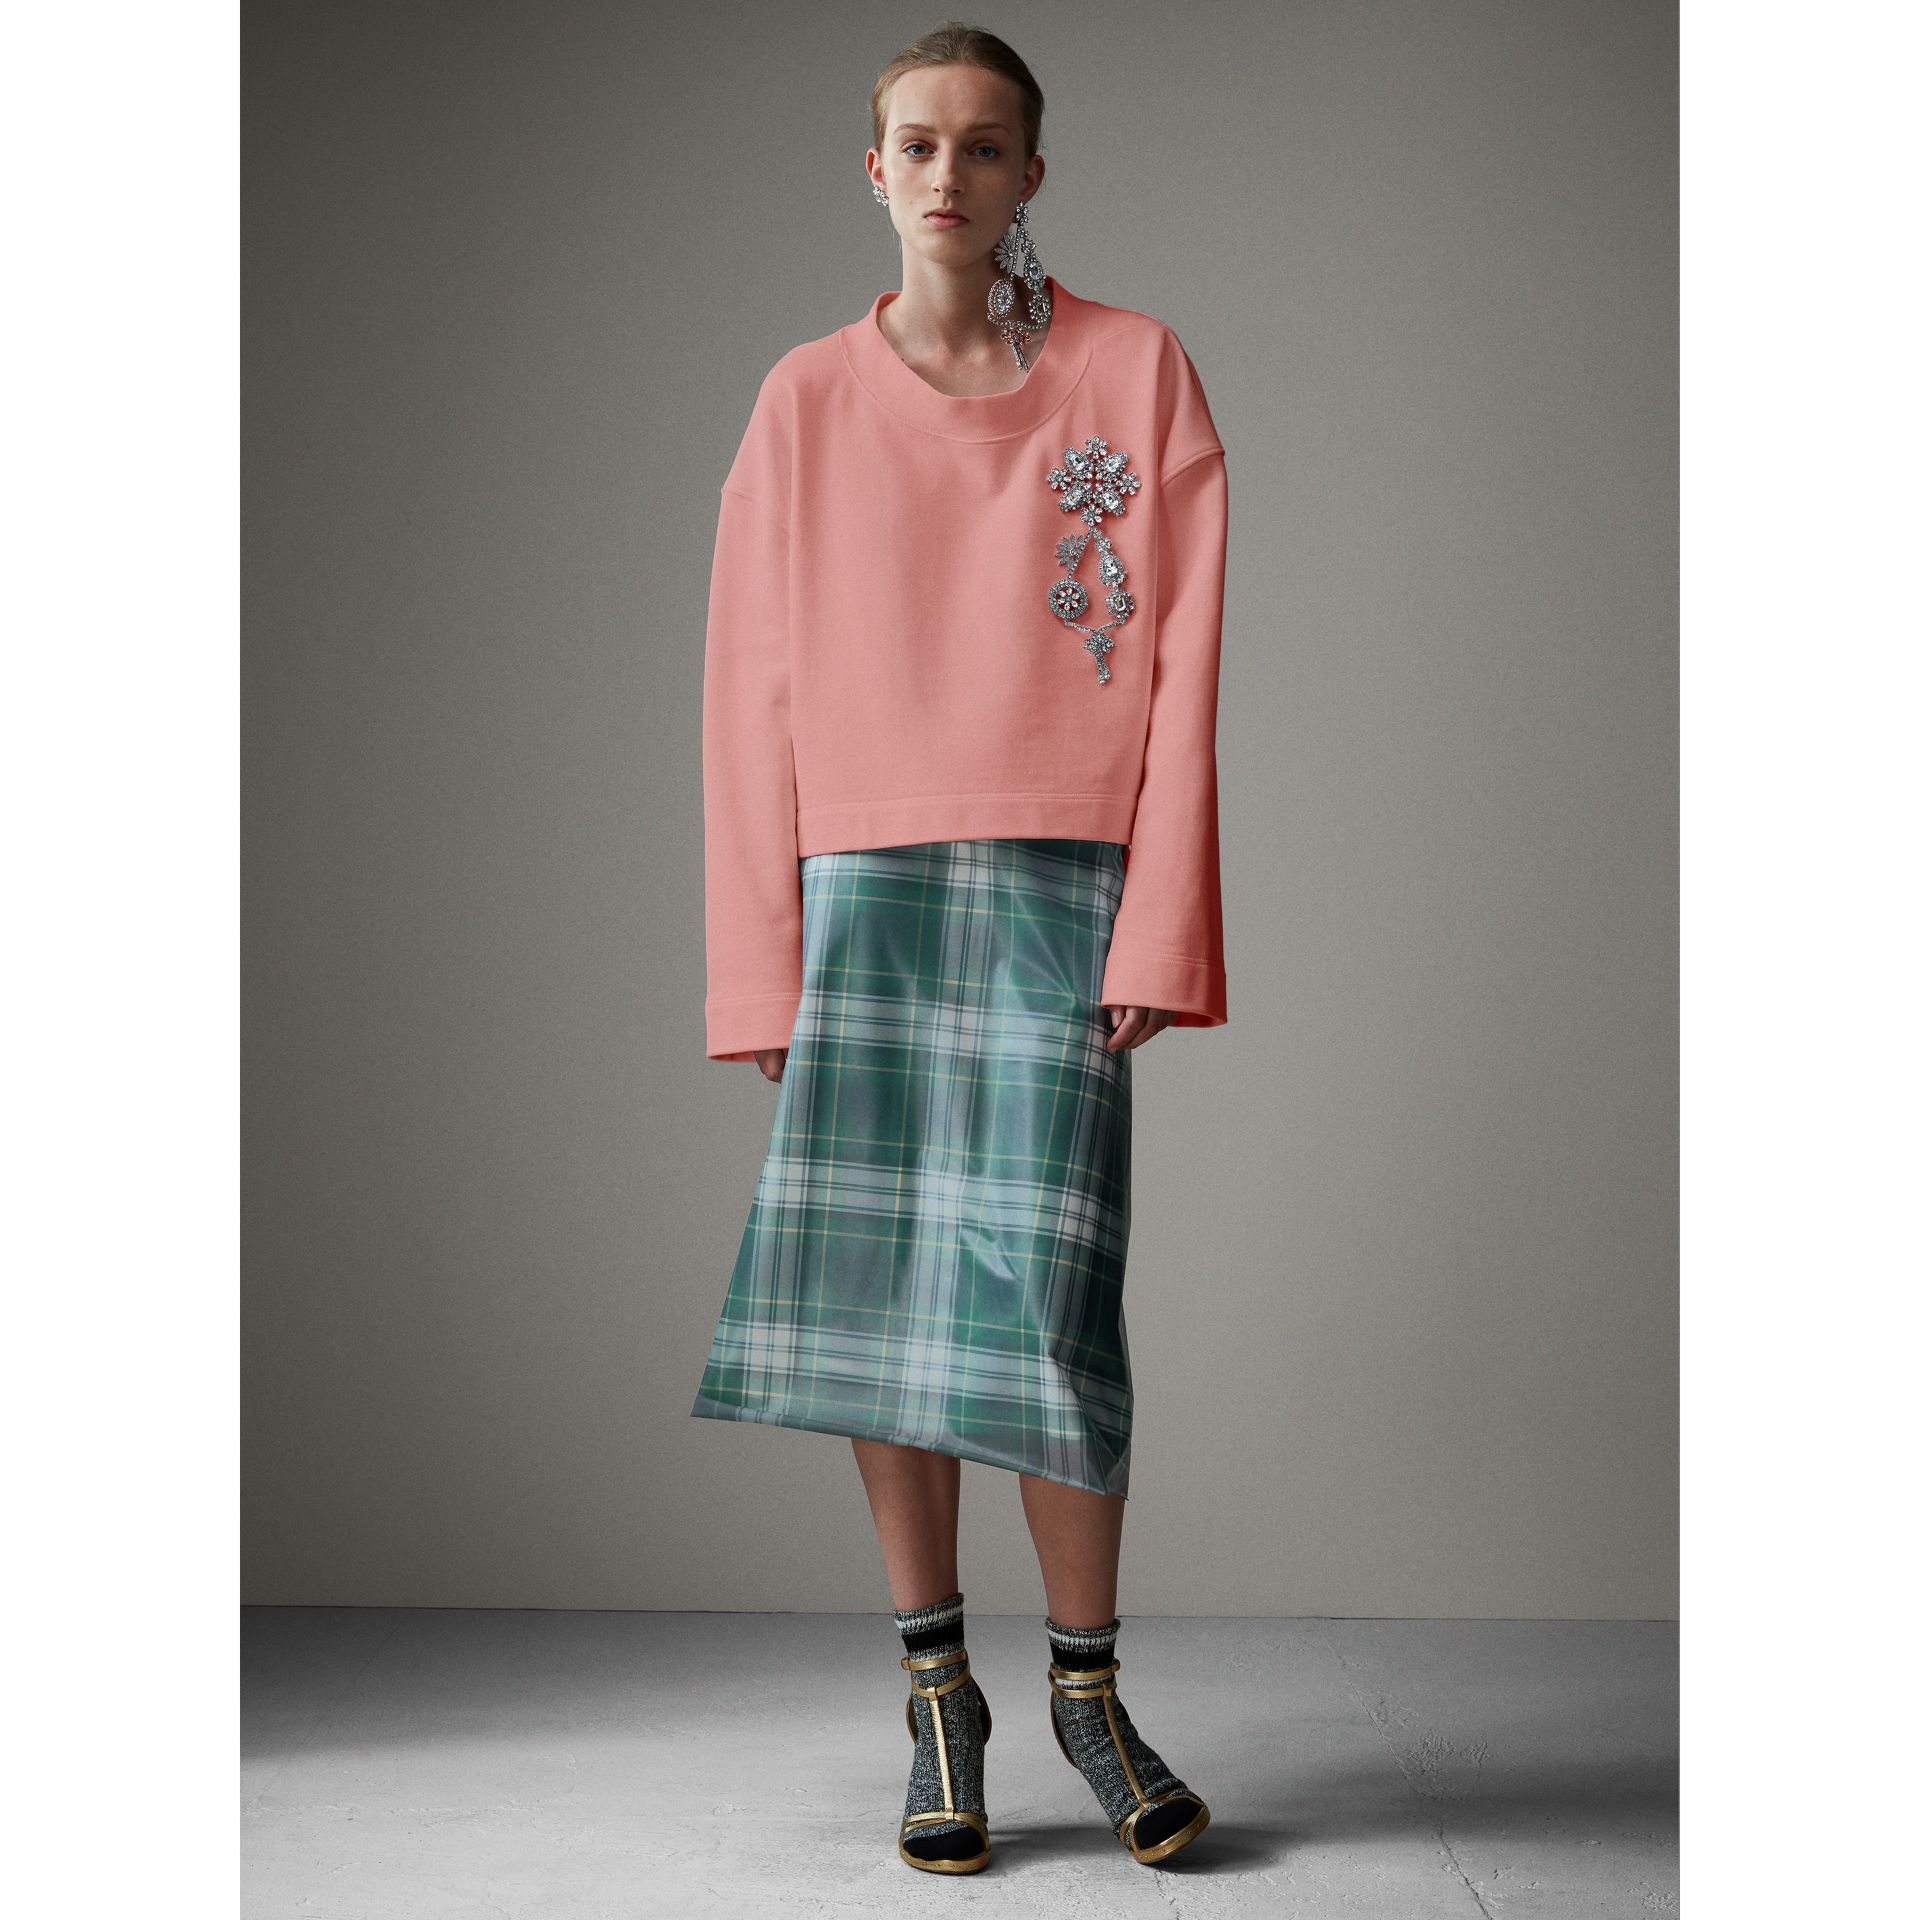 Cropped Sweatshirt with Crystal Brooch in Vintage Rose - Women | Burberry United Kingdom - gallery image 5